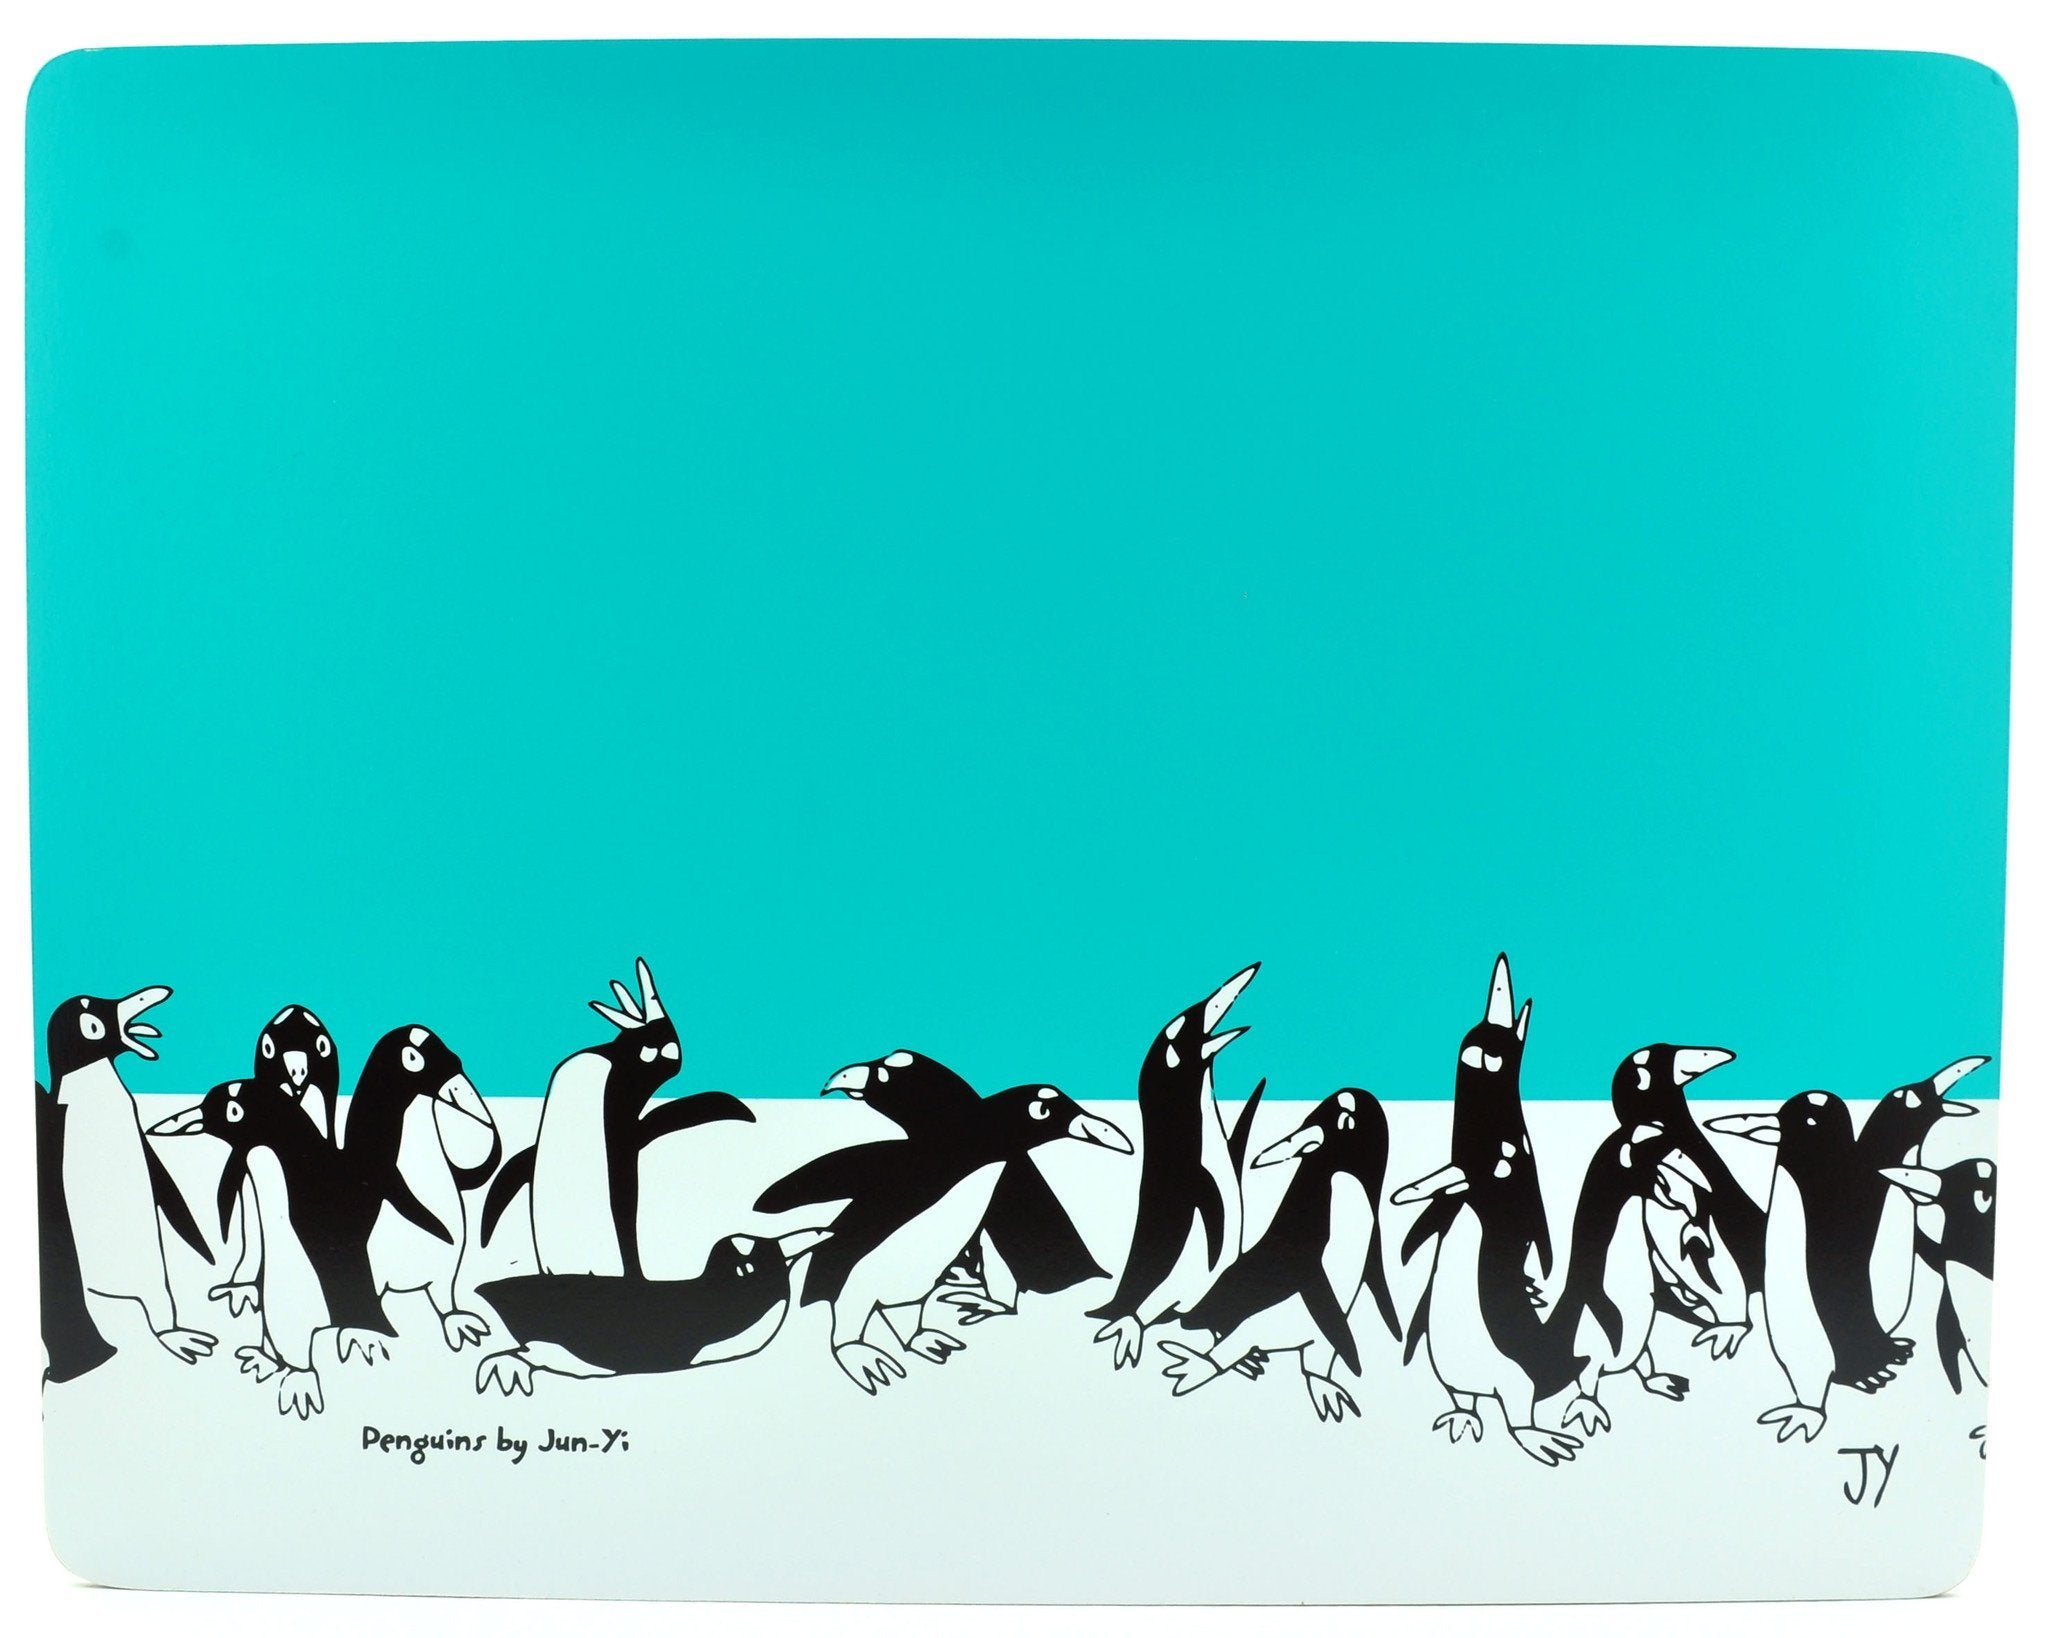 Penguin Placemat - Tableware - The Animal Project - Naiise